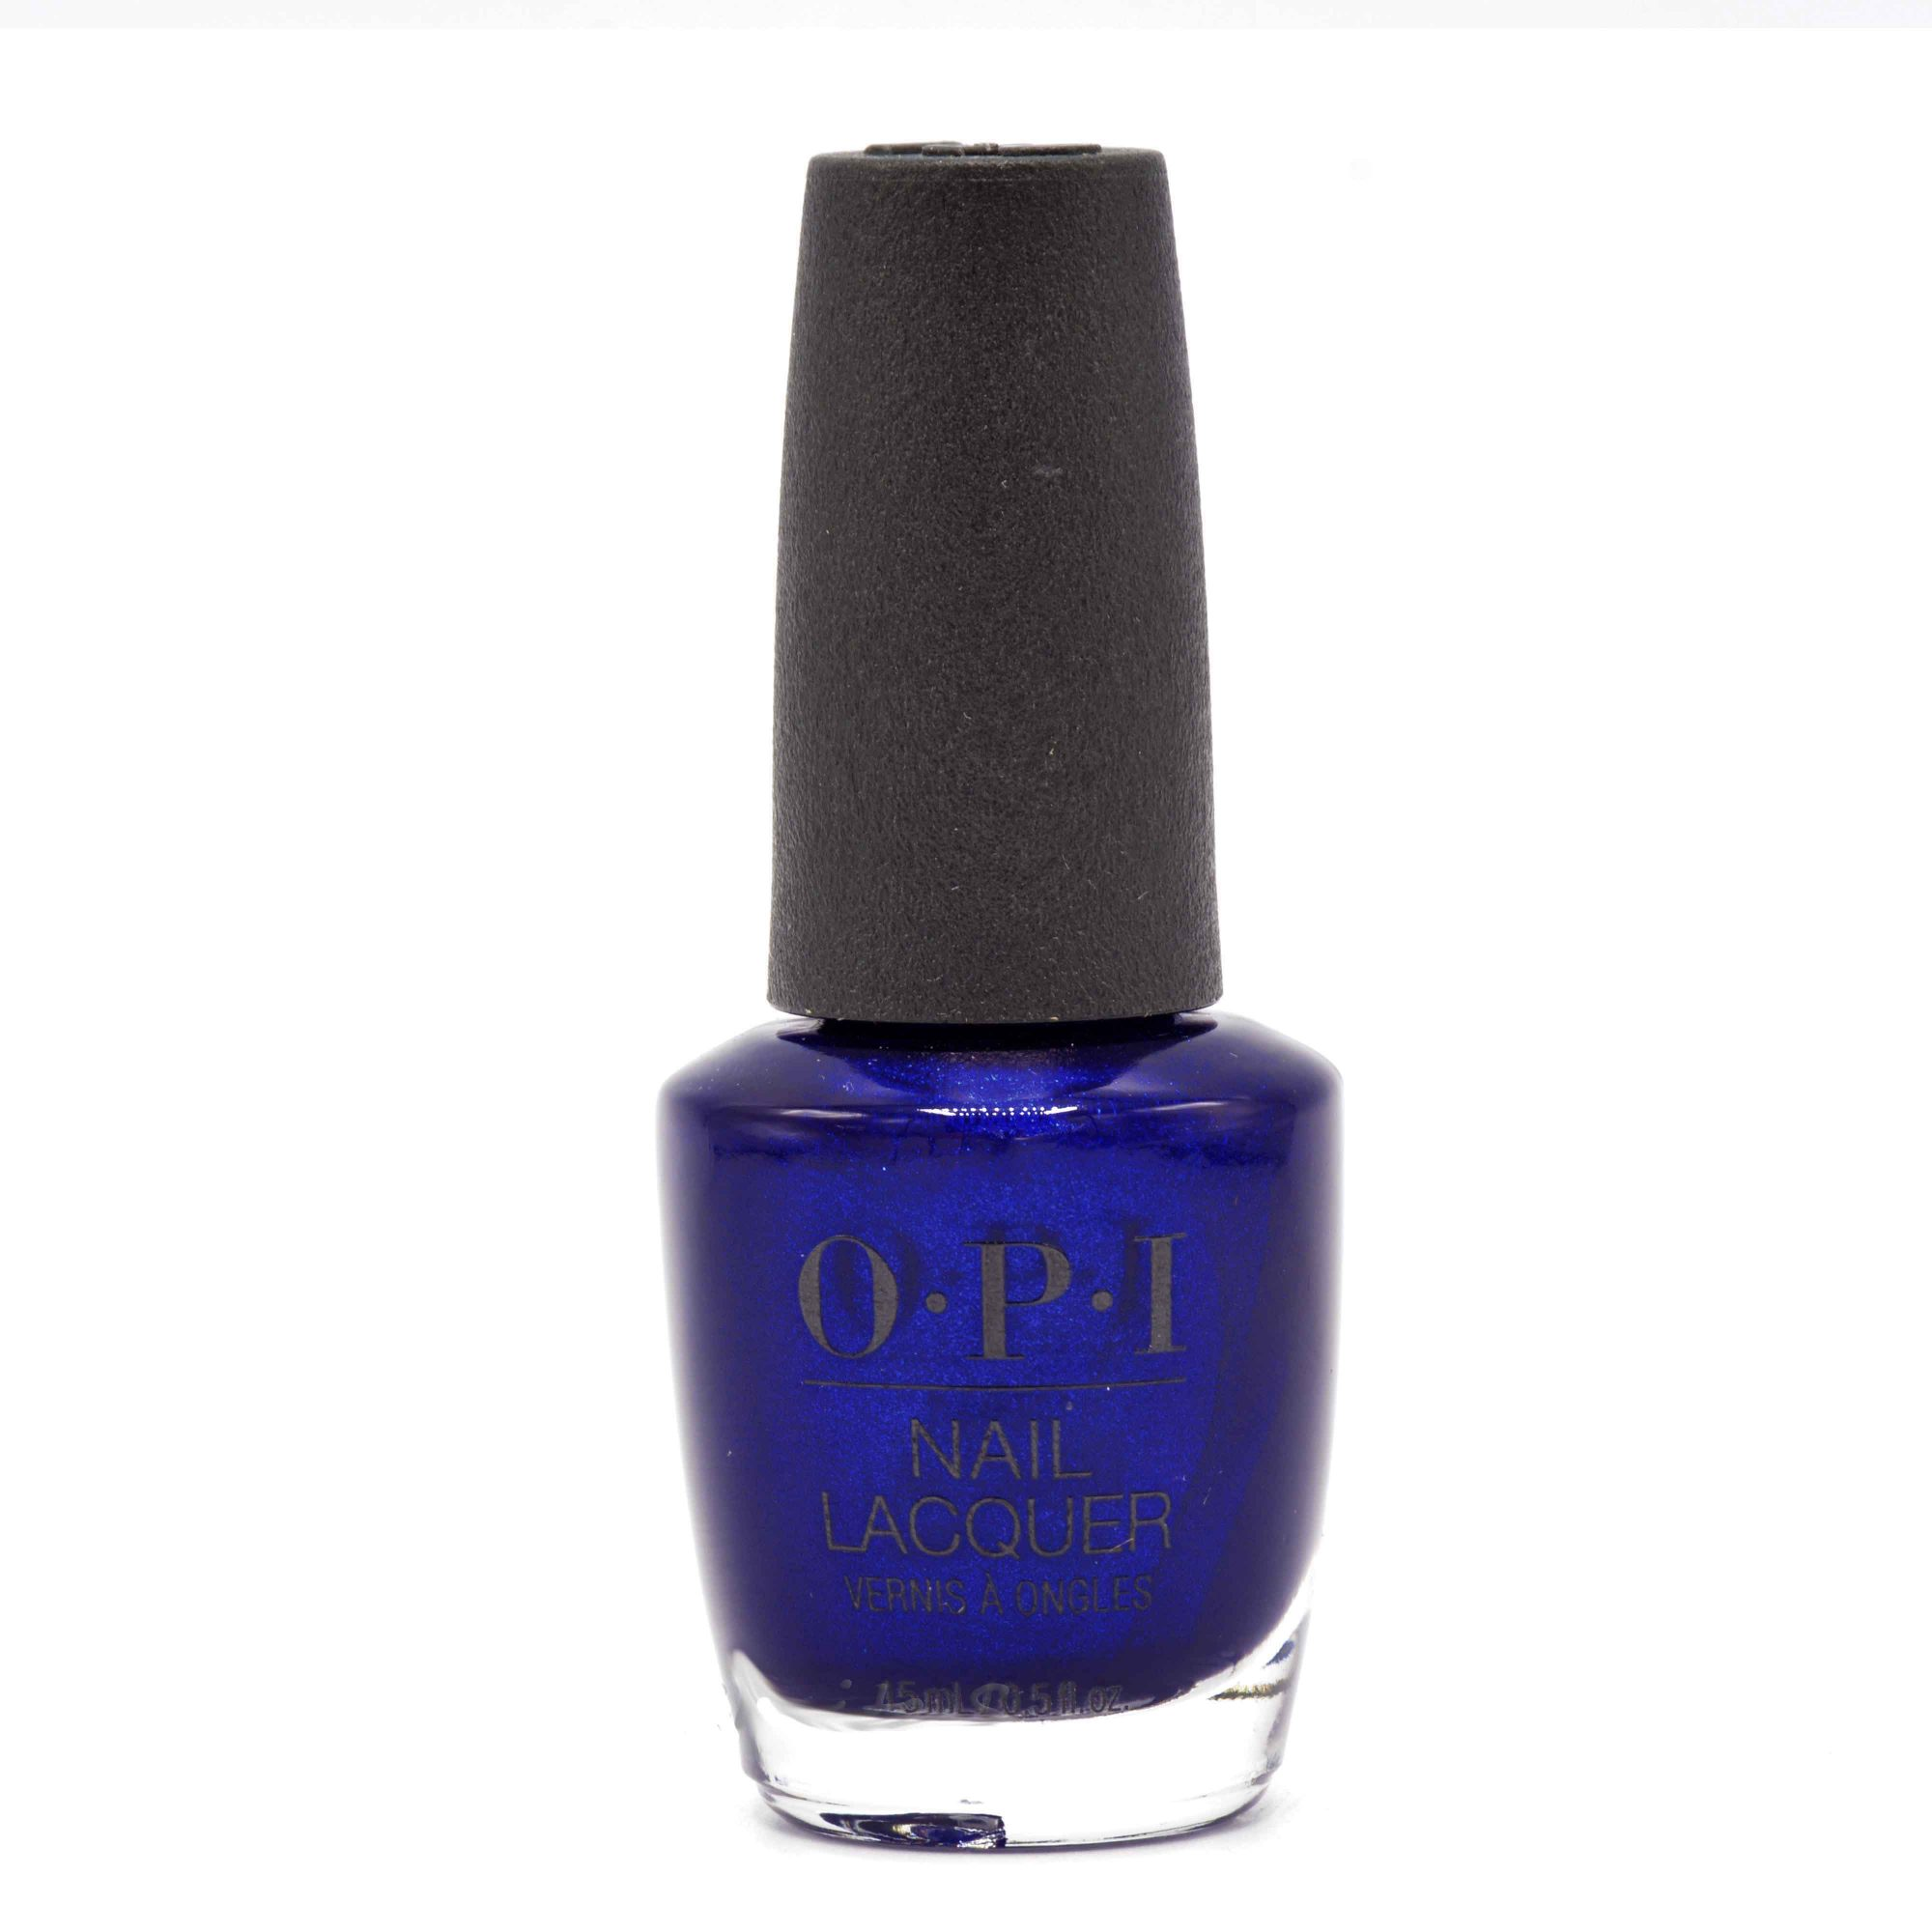 OPI Nail Lacquer in Chopstix and Stones